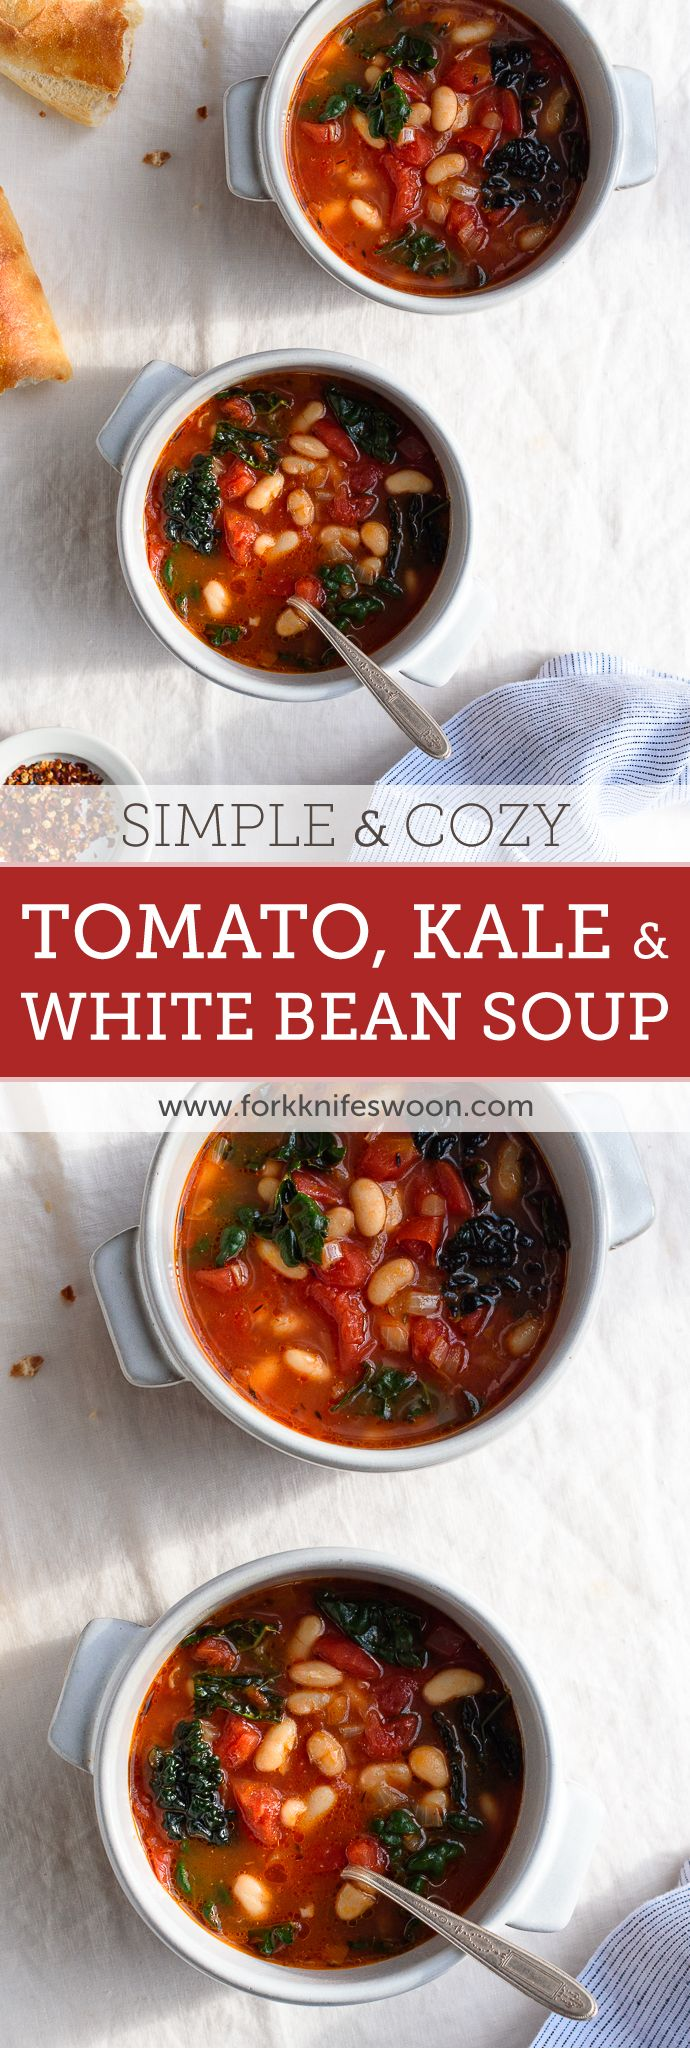 Tomato, Kale and White Bean Soup | Fork Knife Swoon @forkknifeswoon